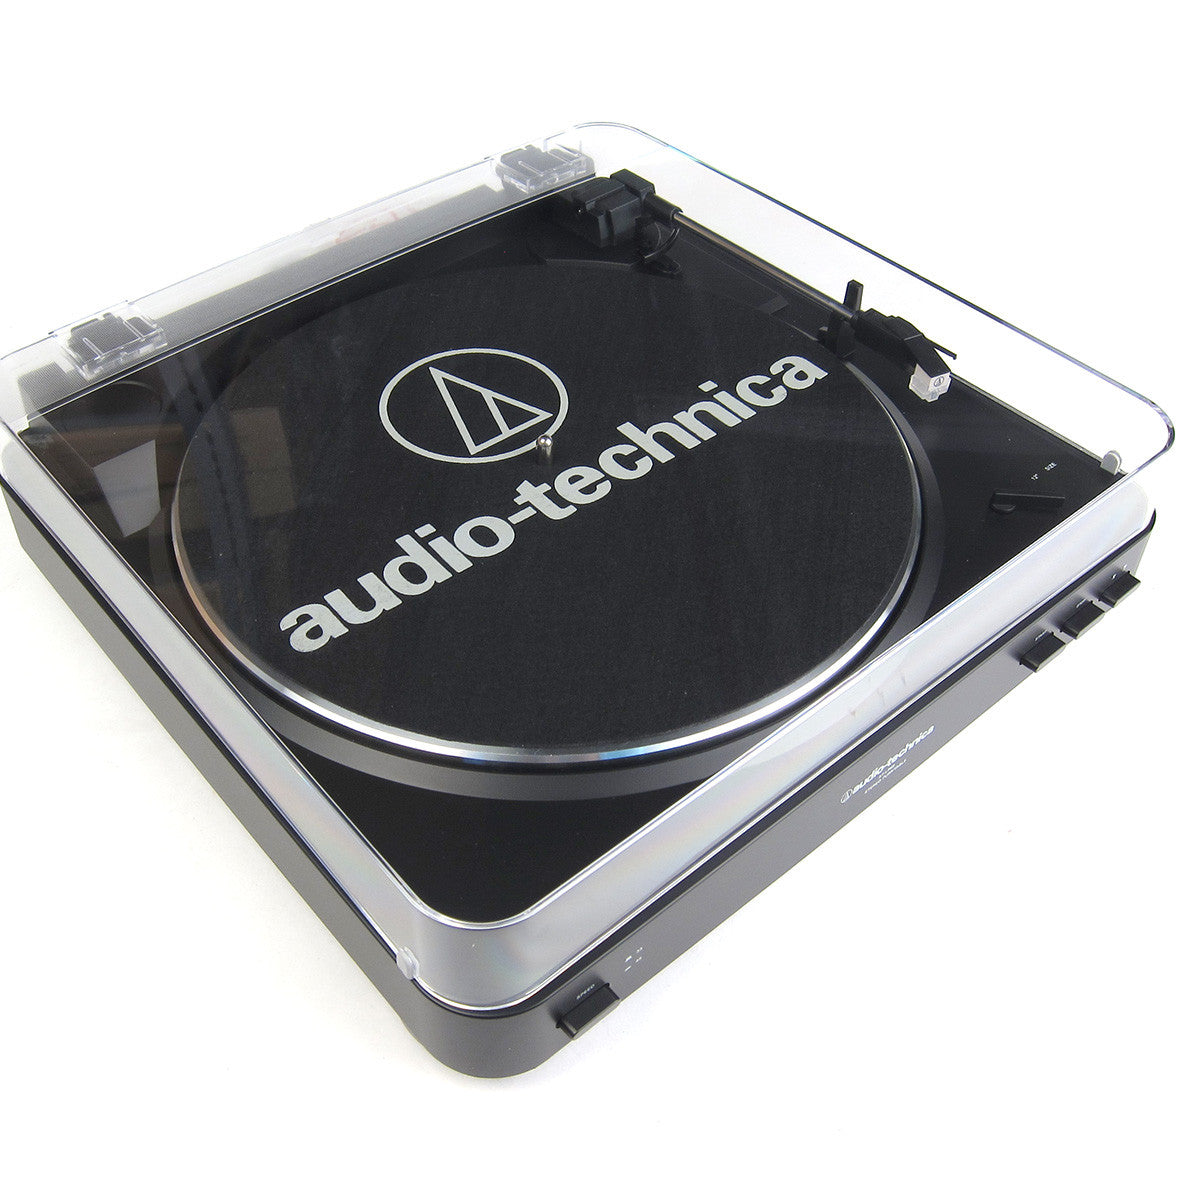 Audio-Technica: AT-LP60BK Automatic Turntable - Dustcover